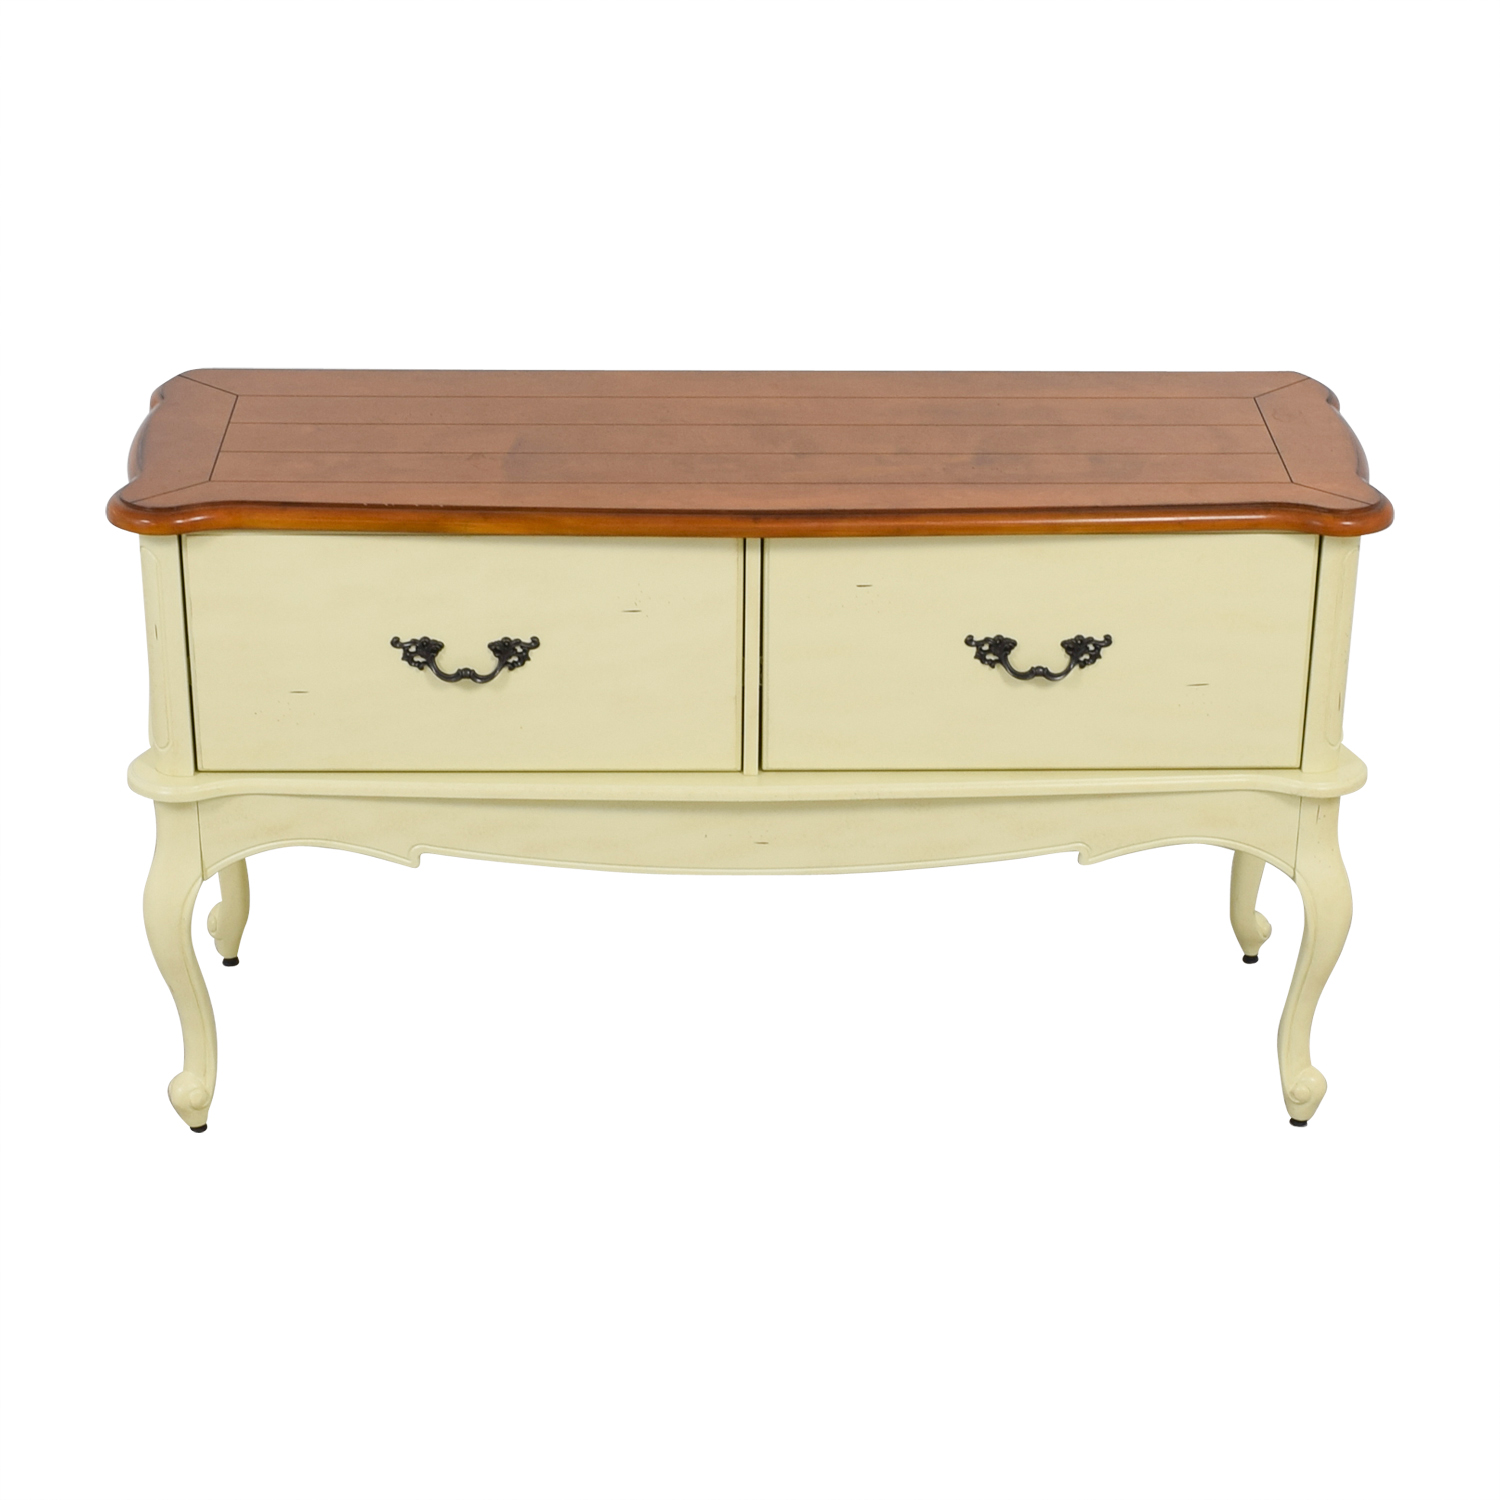 Home Decorators Collection Home Decorators Collection Provence Ivory File Console with Chestnut Top on sale